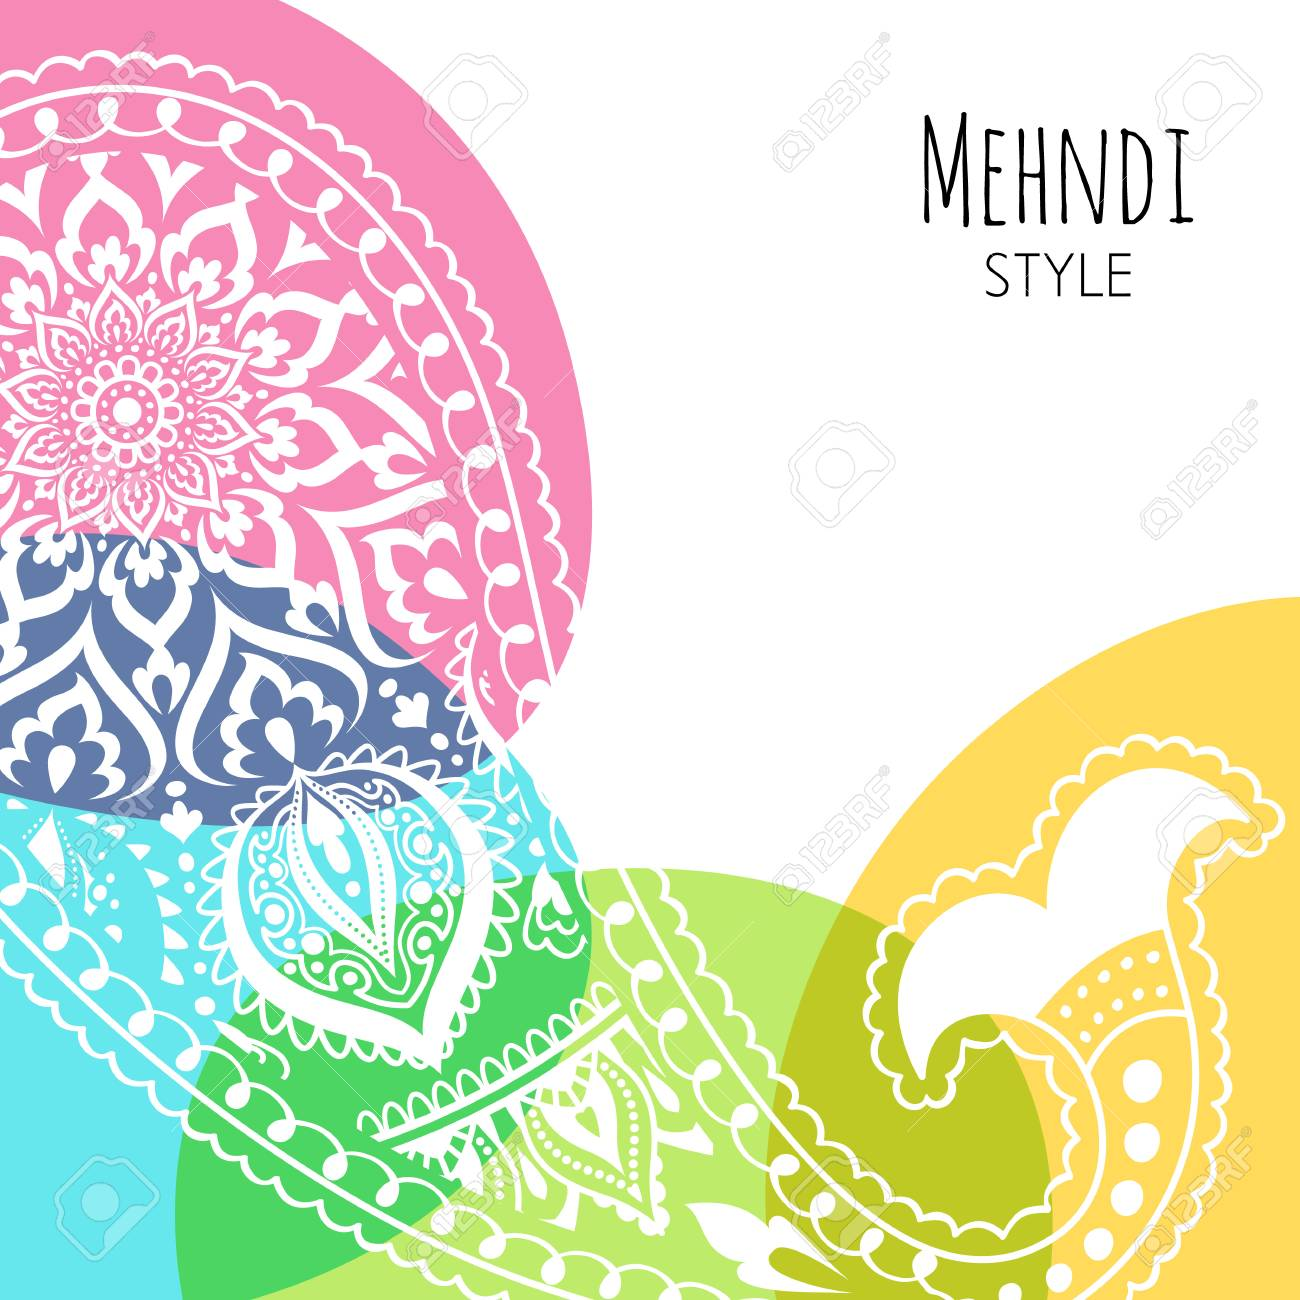 Colorful Paisley Vector Illustration Indian Background Yoga Royalty Free Cliparts Vectors And Stock Illustration Image 115046209